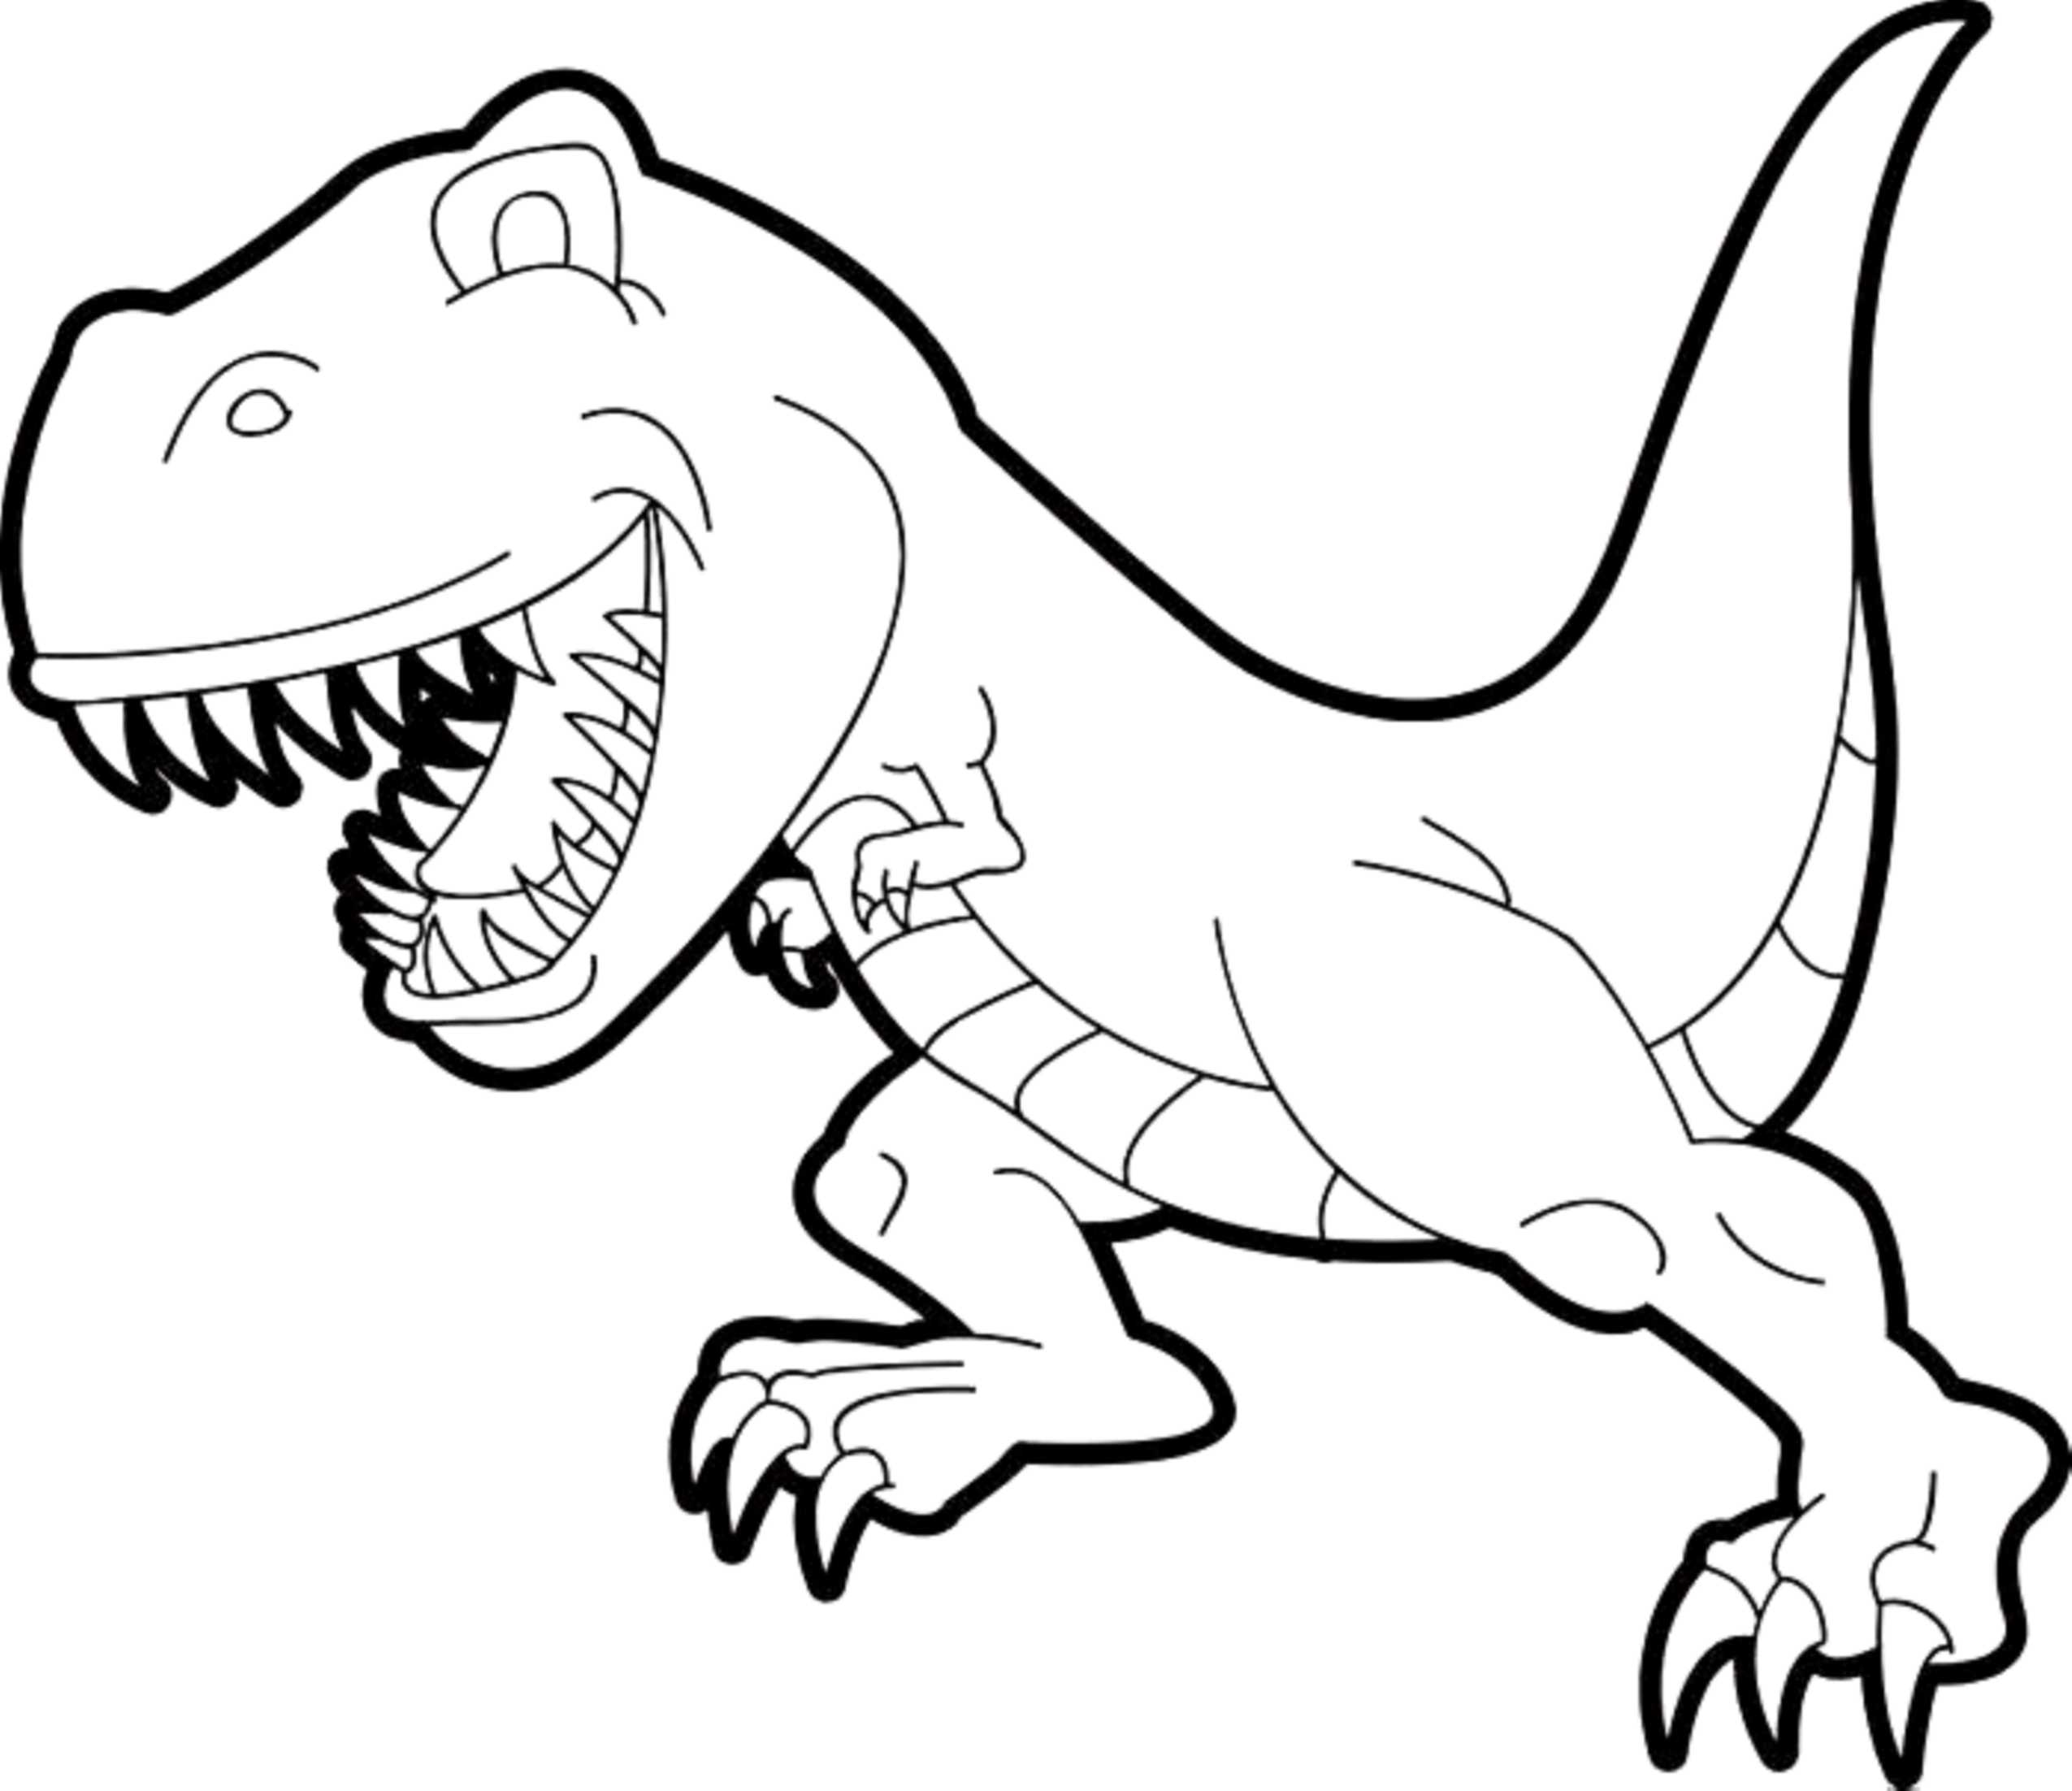 dinosaurs color pages easy dinosaur coloring pages coloring home pages color dinosaurs